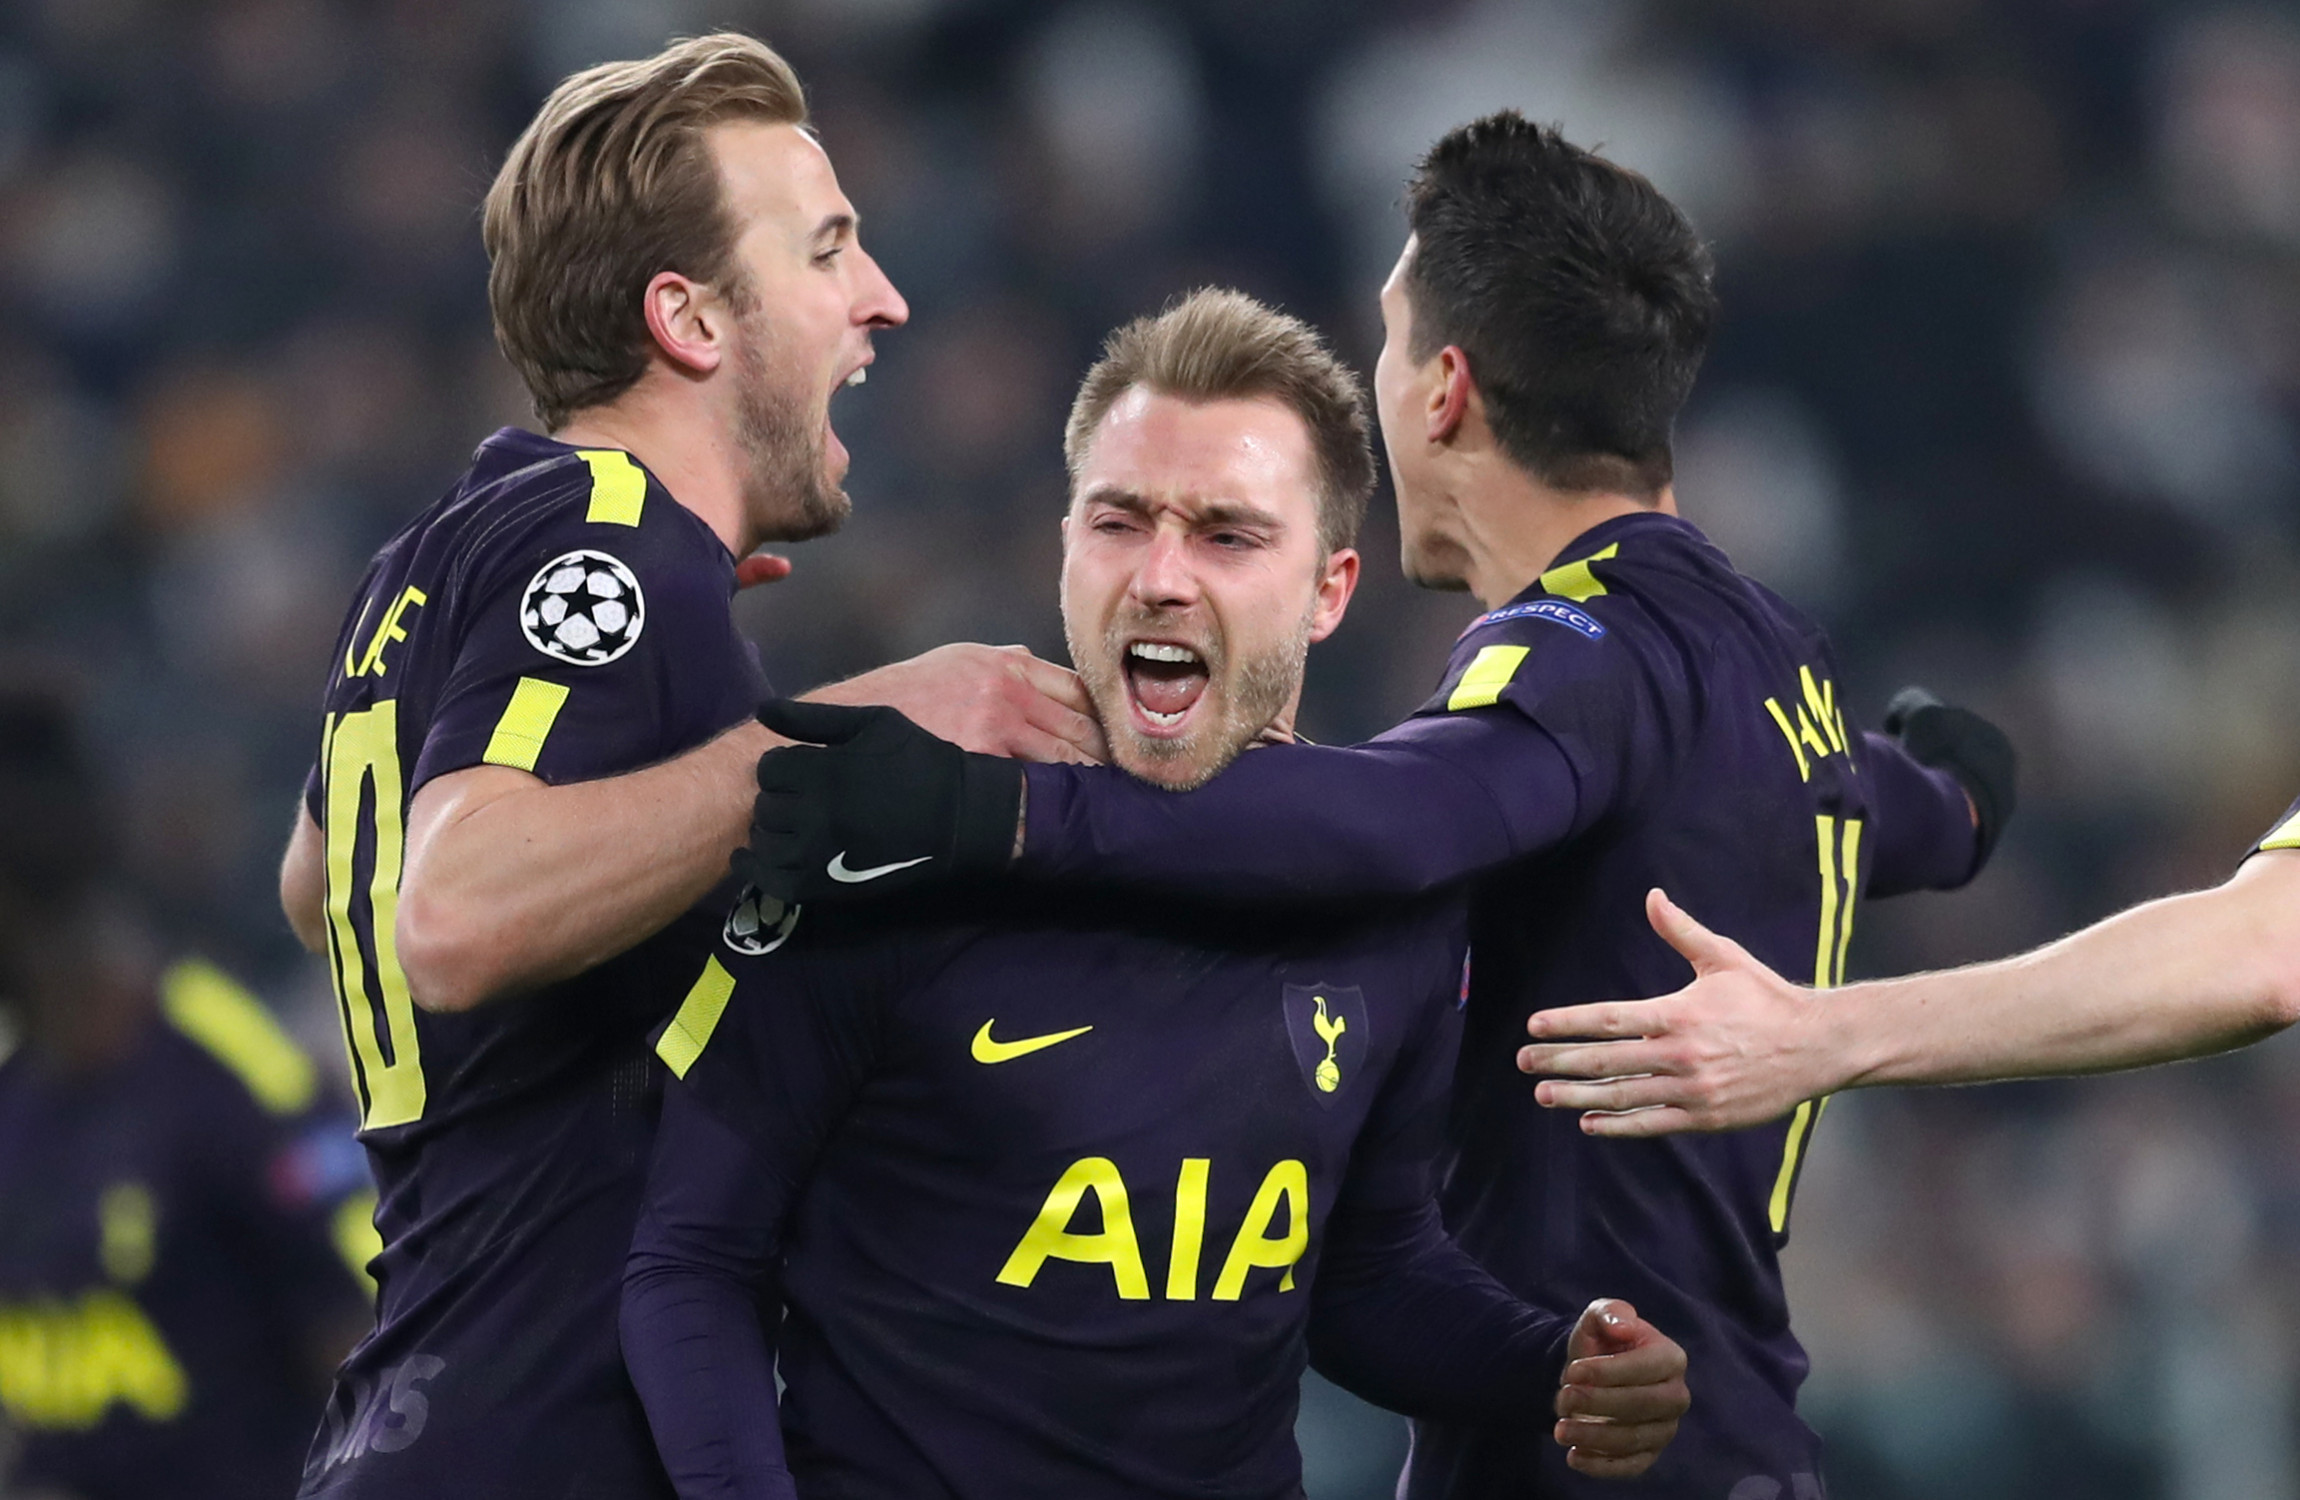 Harry Kane makes Champions League history with ninth career goal